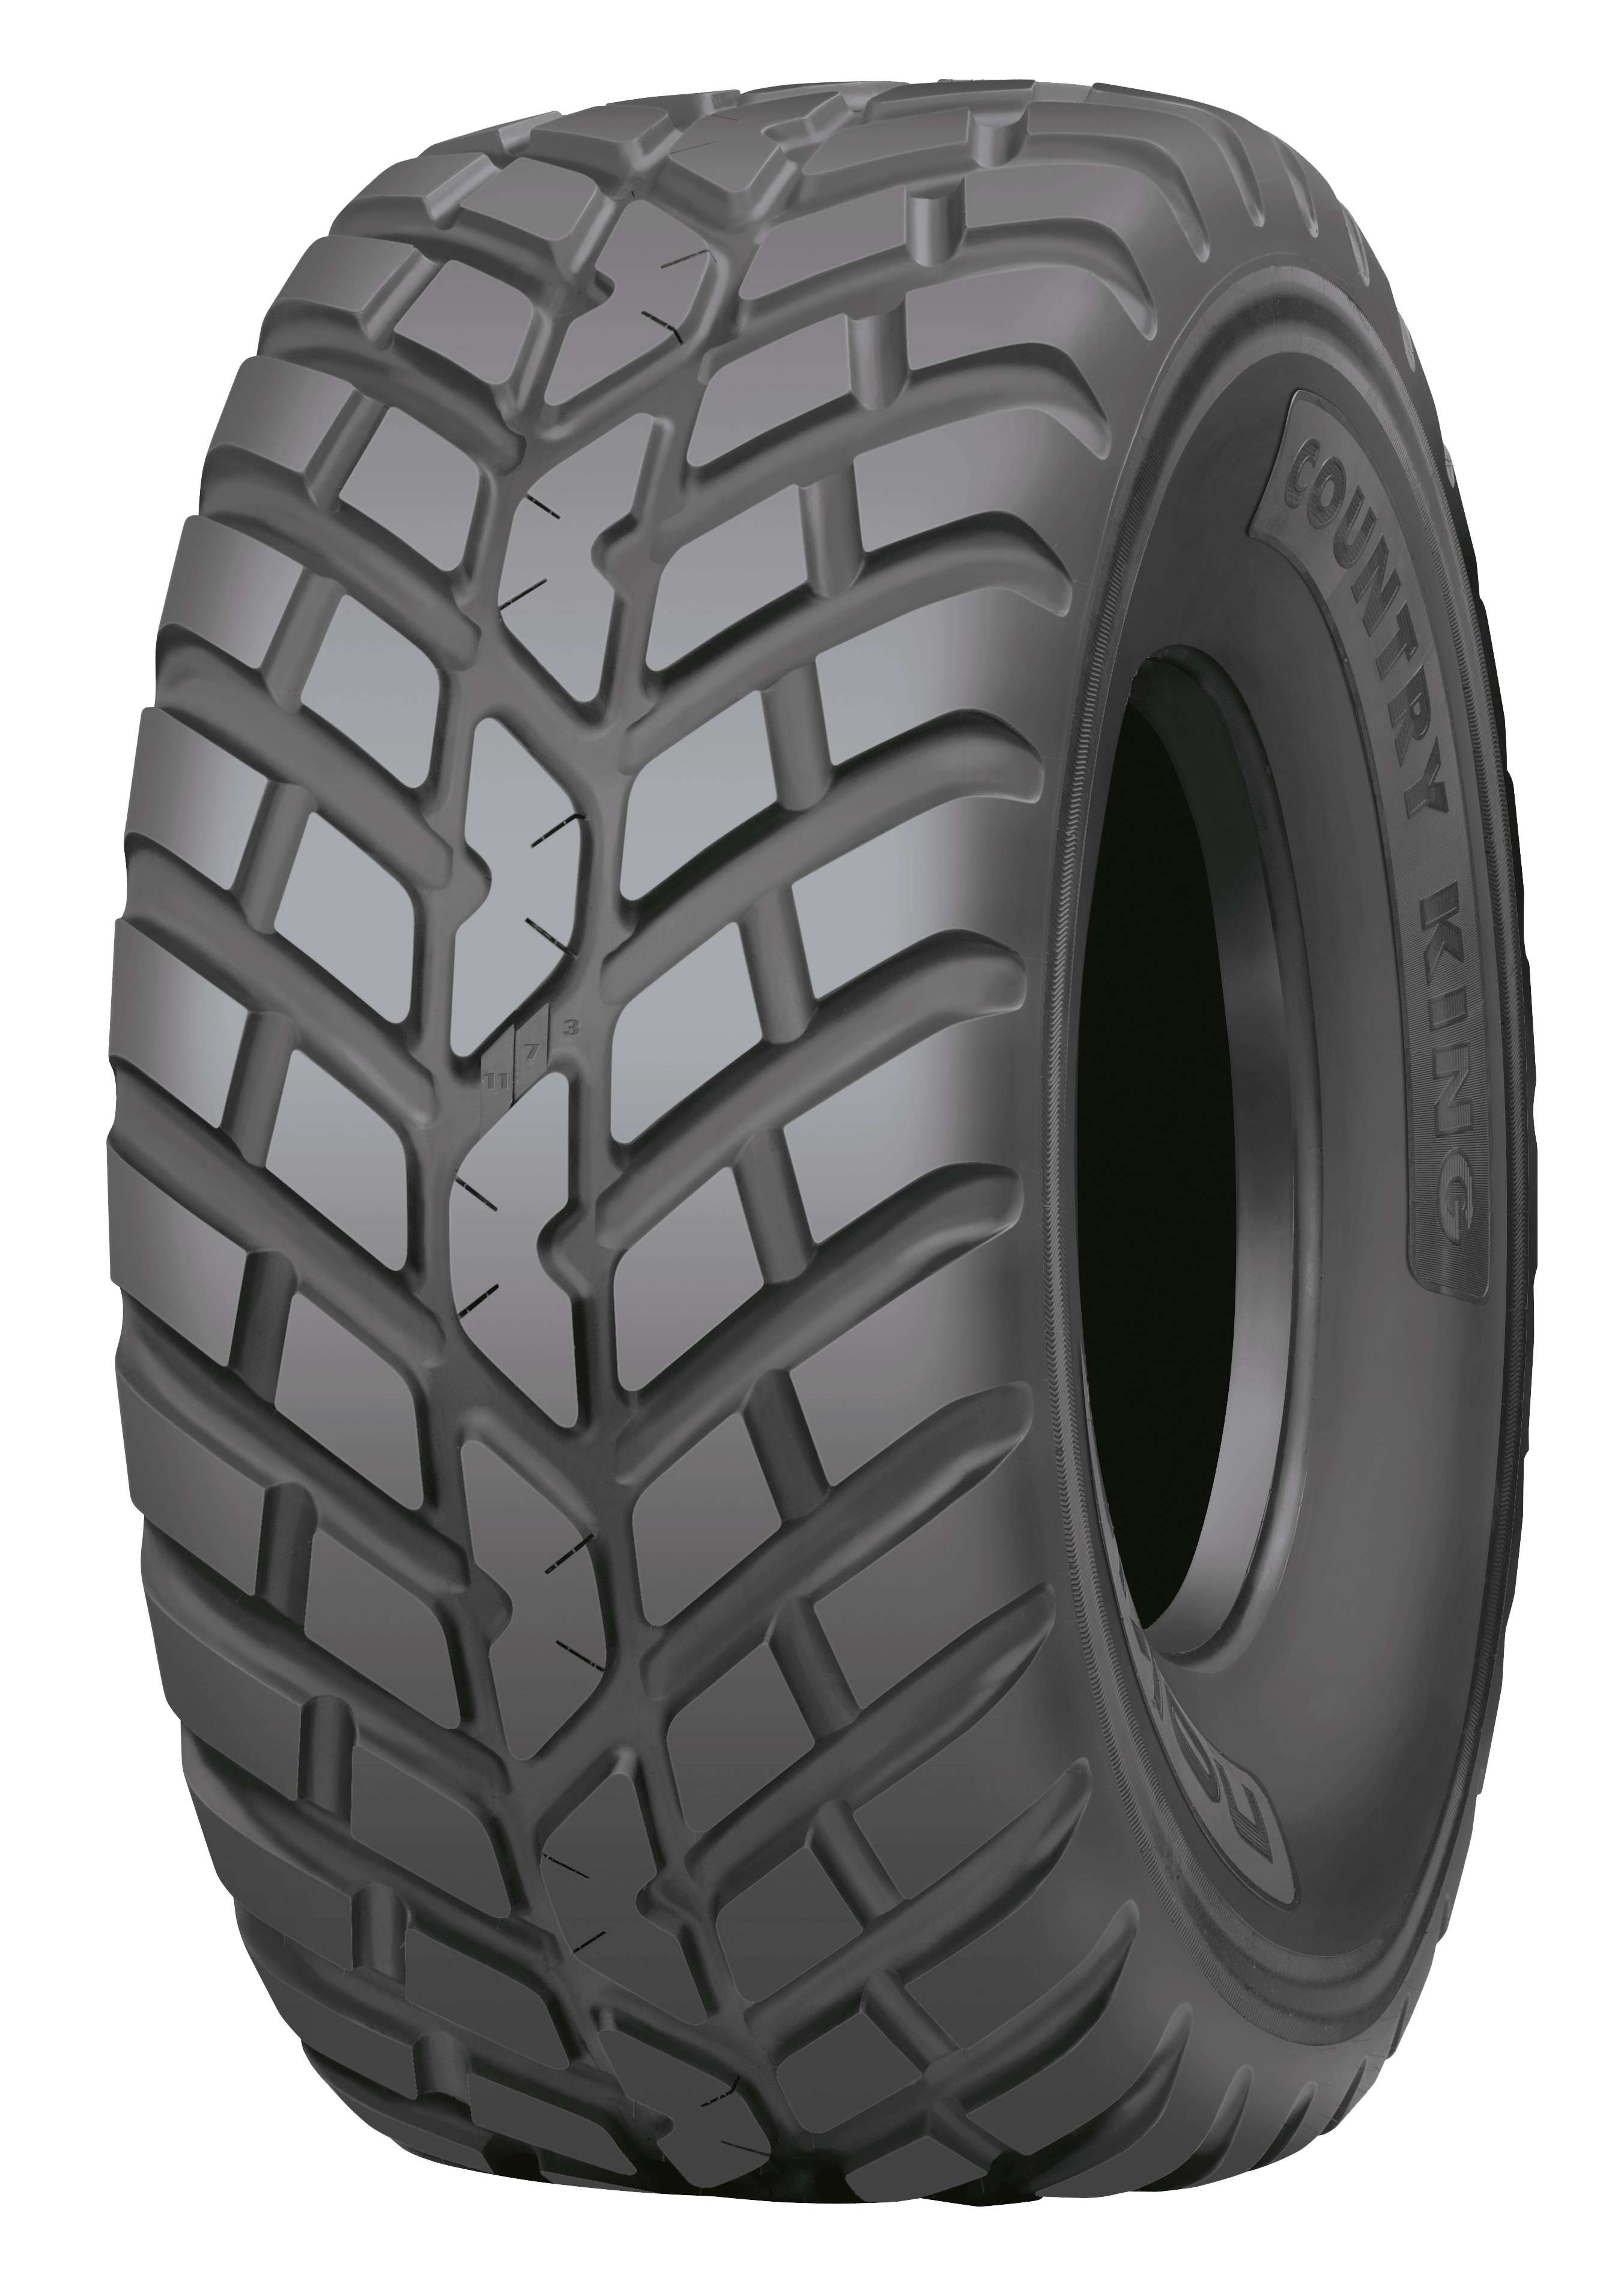 710/45R22.5 NOKIAN COUNTRY KING 165D TL